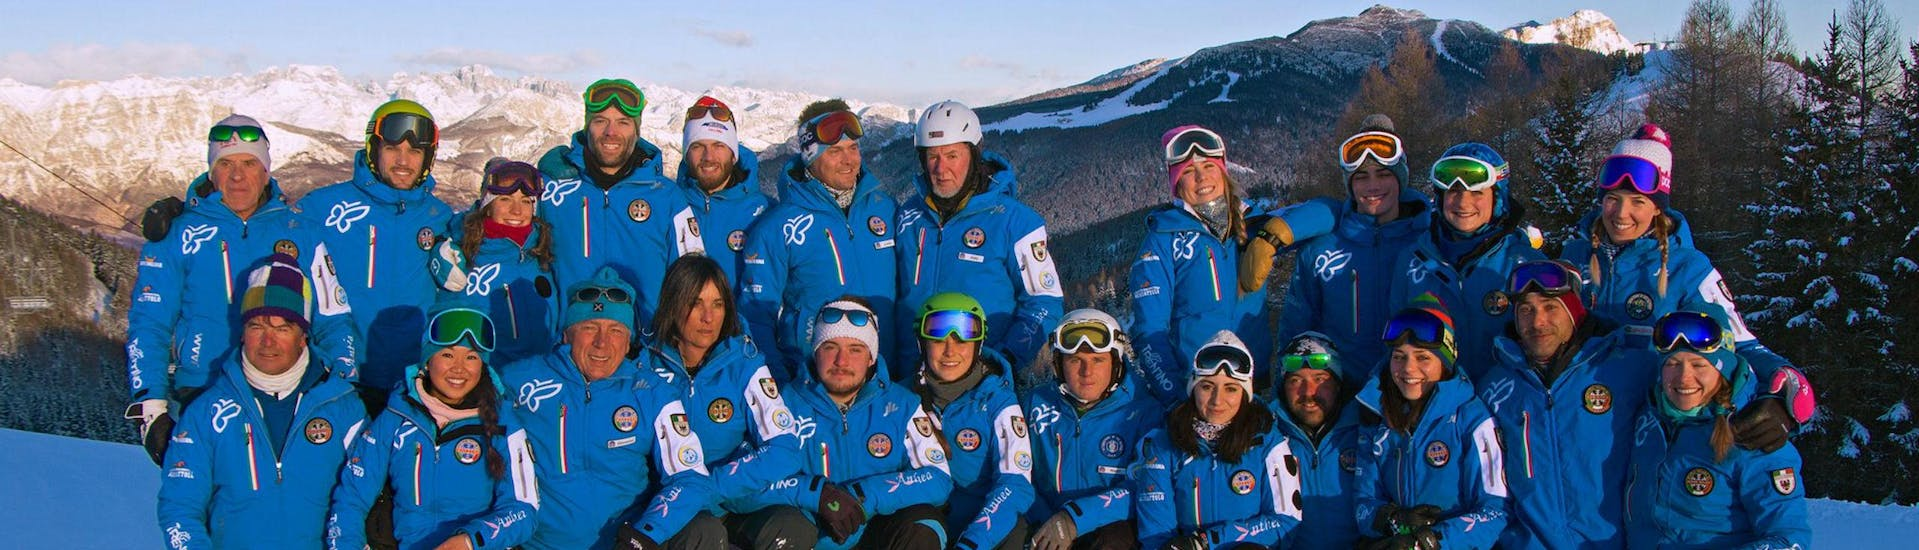 The ski instructors from the ski school Scuola di Sci e Snowboard Alpe Cimbra are gathered on top of the mountain where they conduct their ski lessons in the ski resort of Folgaria.